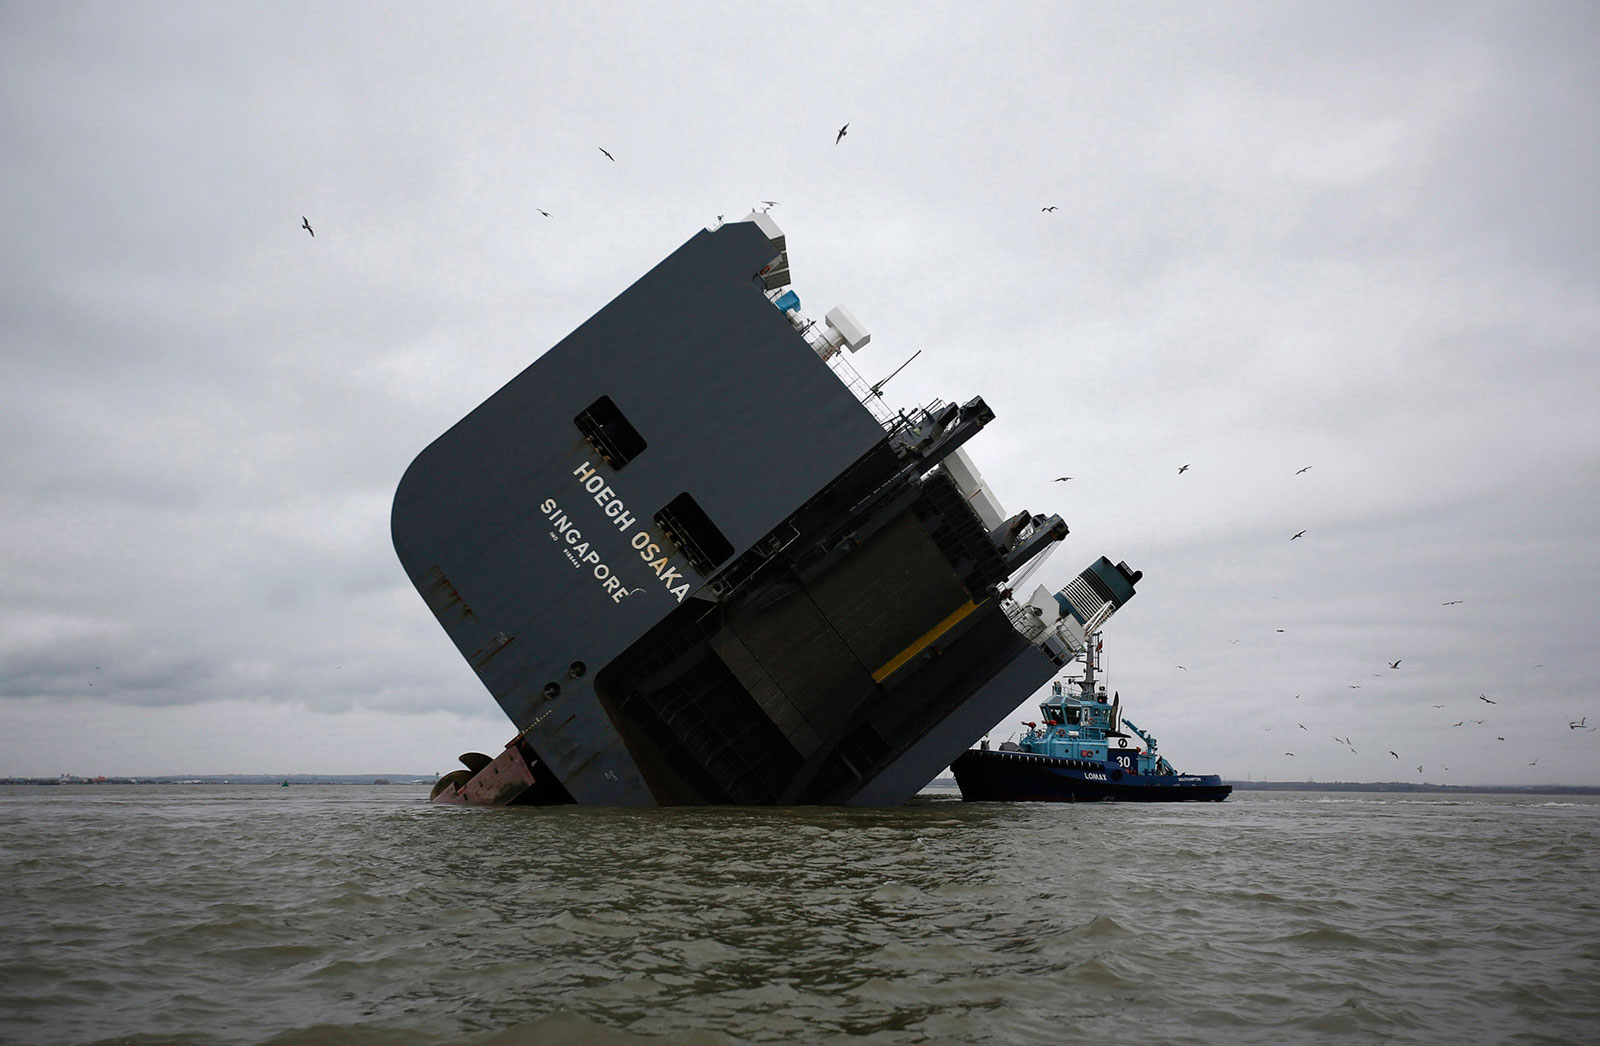 The Lomax firefighting tug, operated by Solent Towage, sits alongside the Hoegh Osaka ro-ro cargo ship, operated by Hoegh Autoliners, as it sits grounded on Bramble Bank in the Solent near Cowes, on the Isle of Wight, U.K.